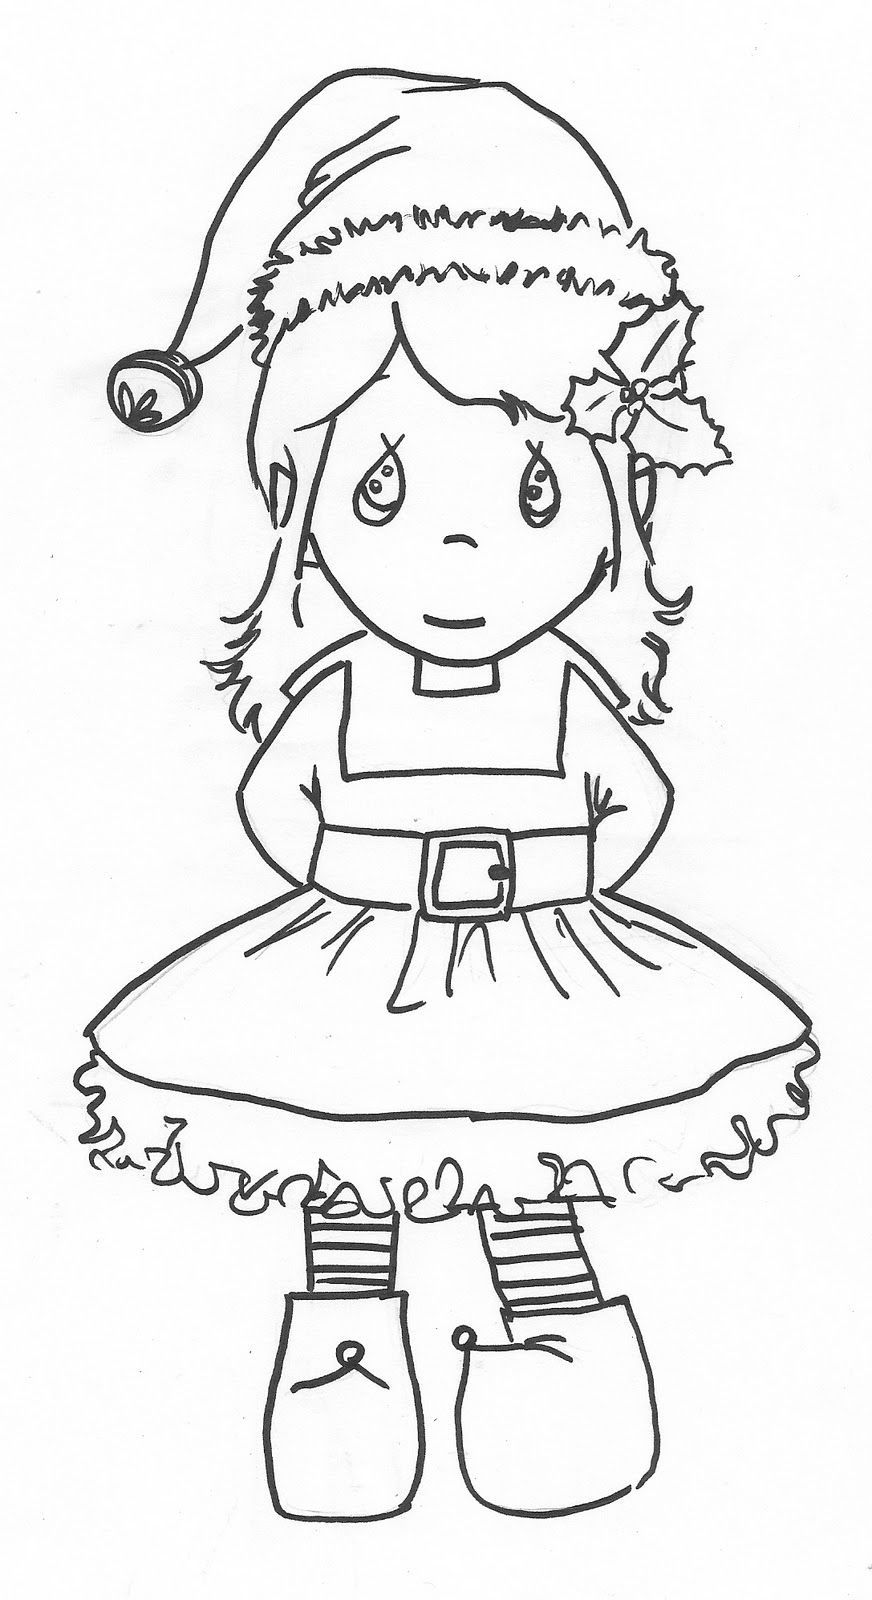 Cute Elf Coloring Pages - Coloring Home